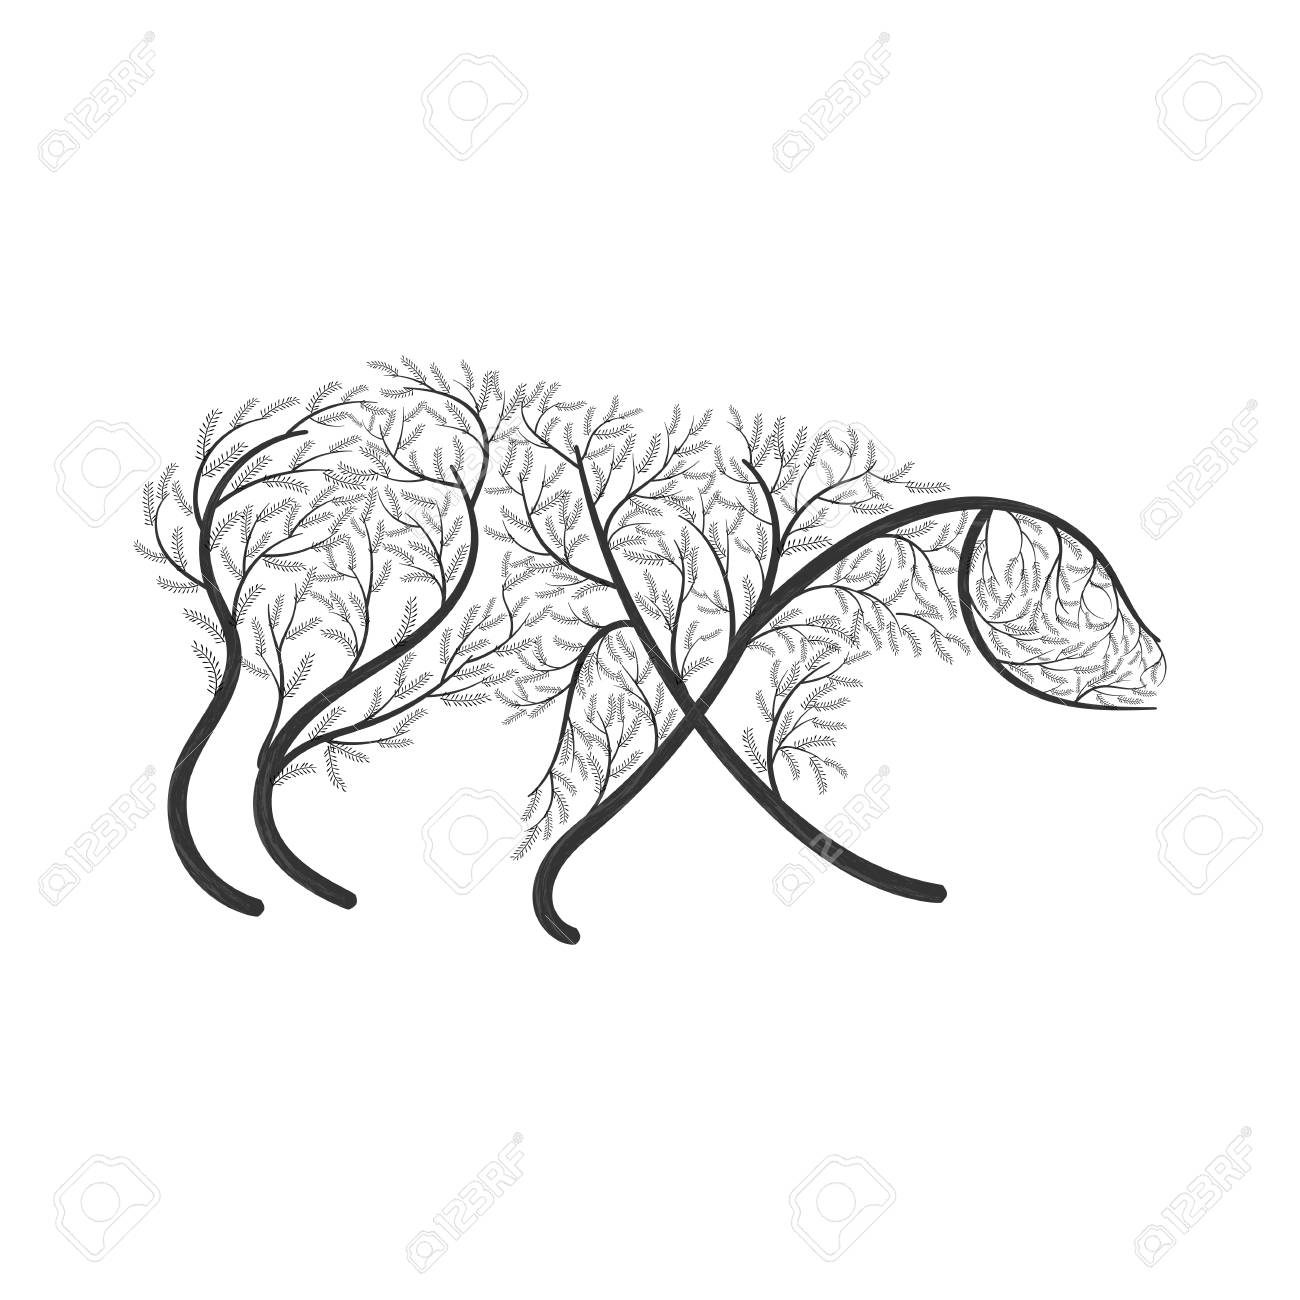 1300x1300 Polar Bear Stylized Bush For Use As Logos On Cards, In Printing